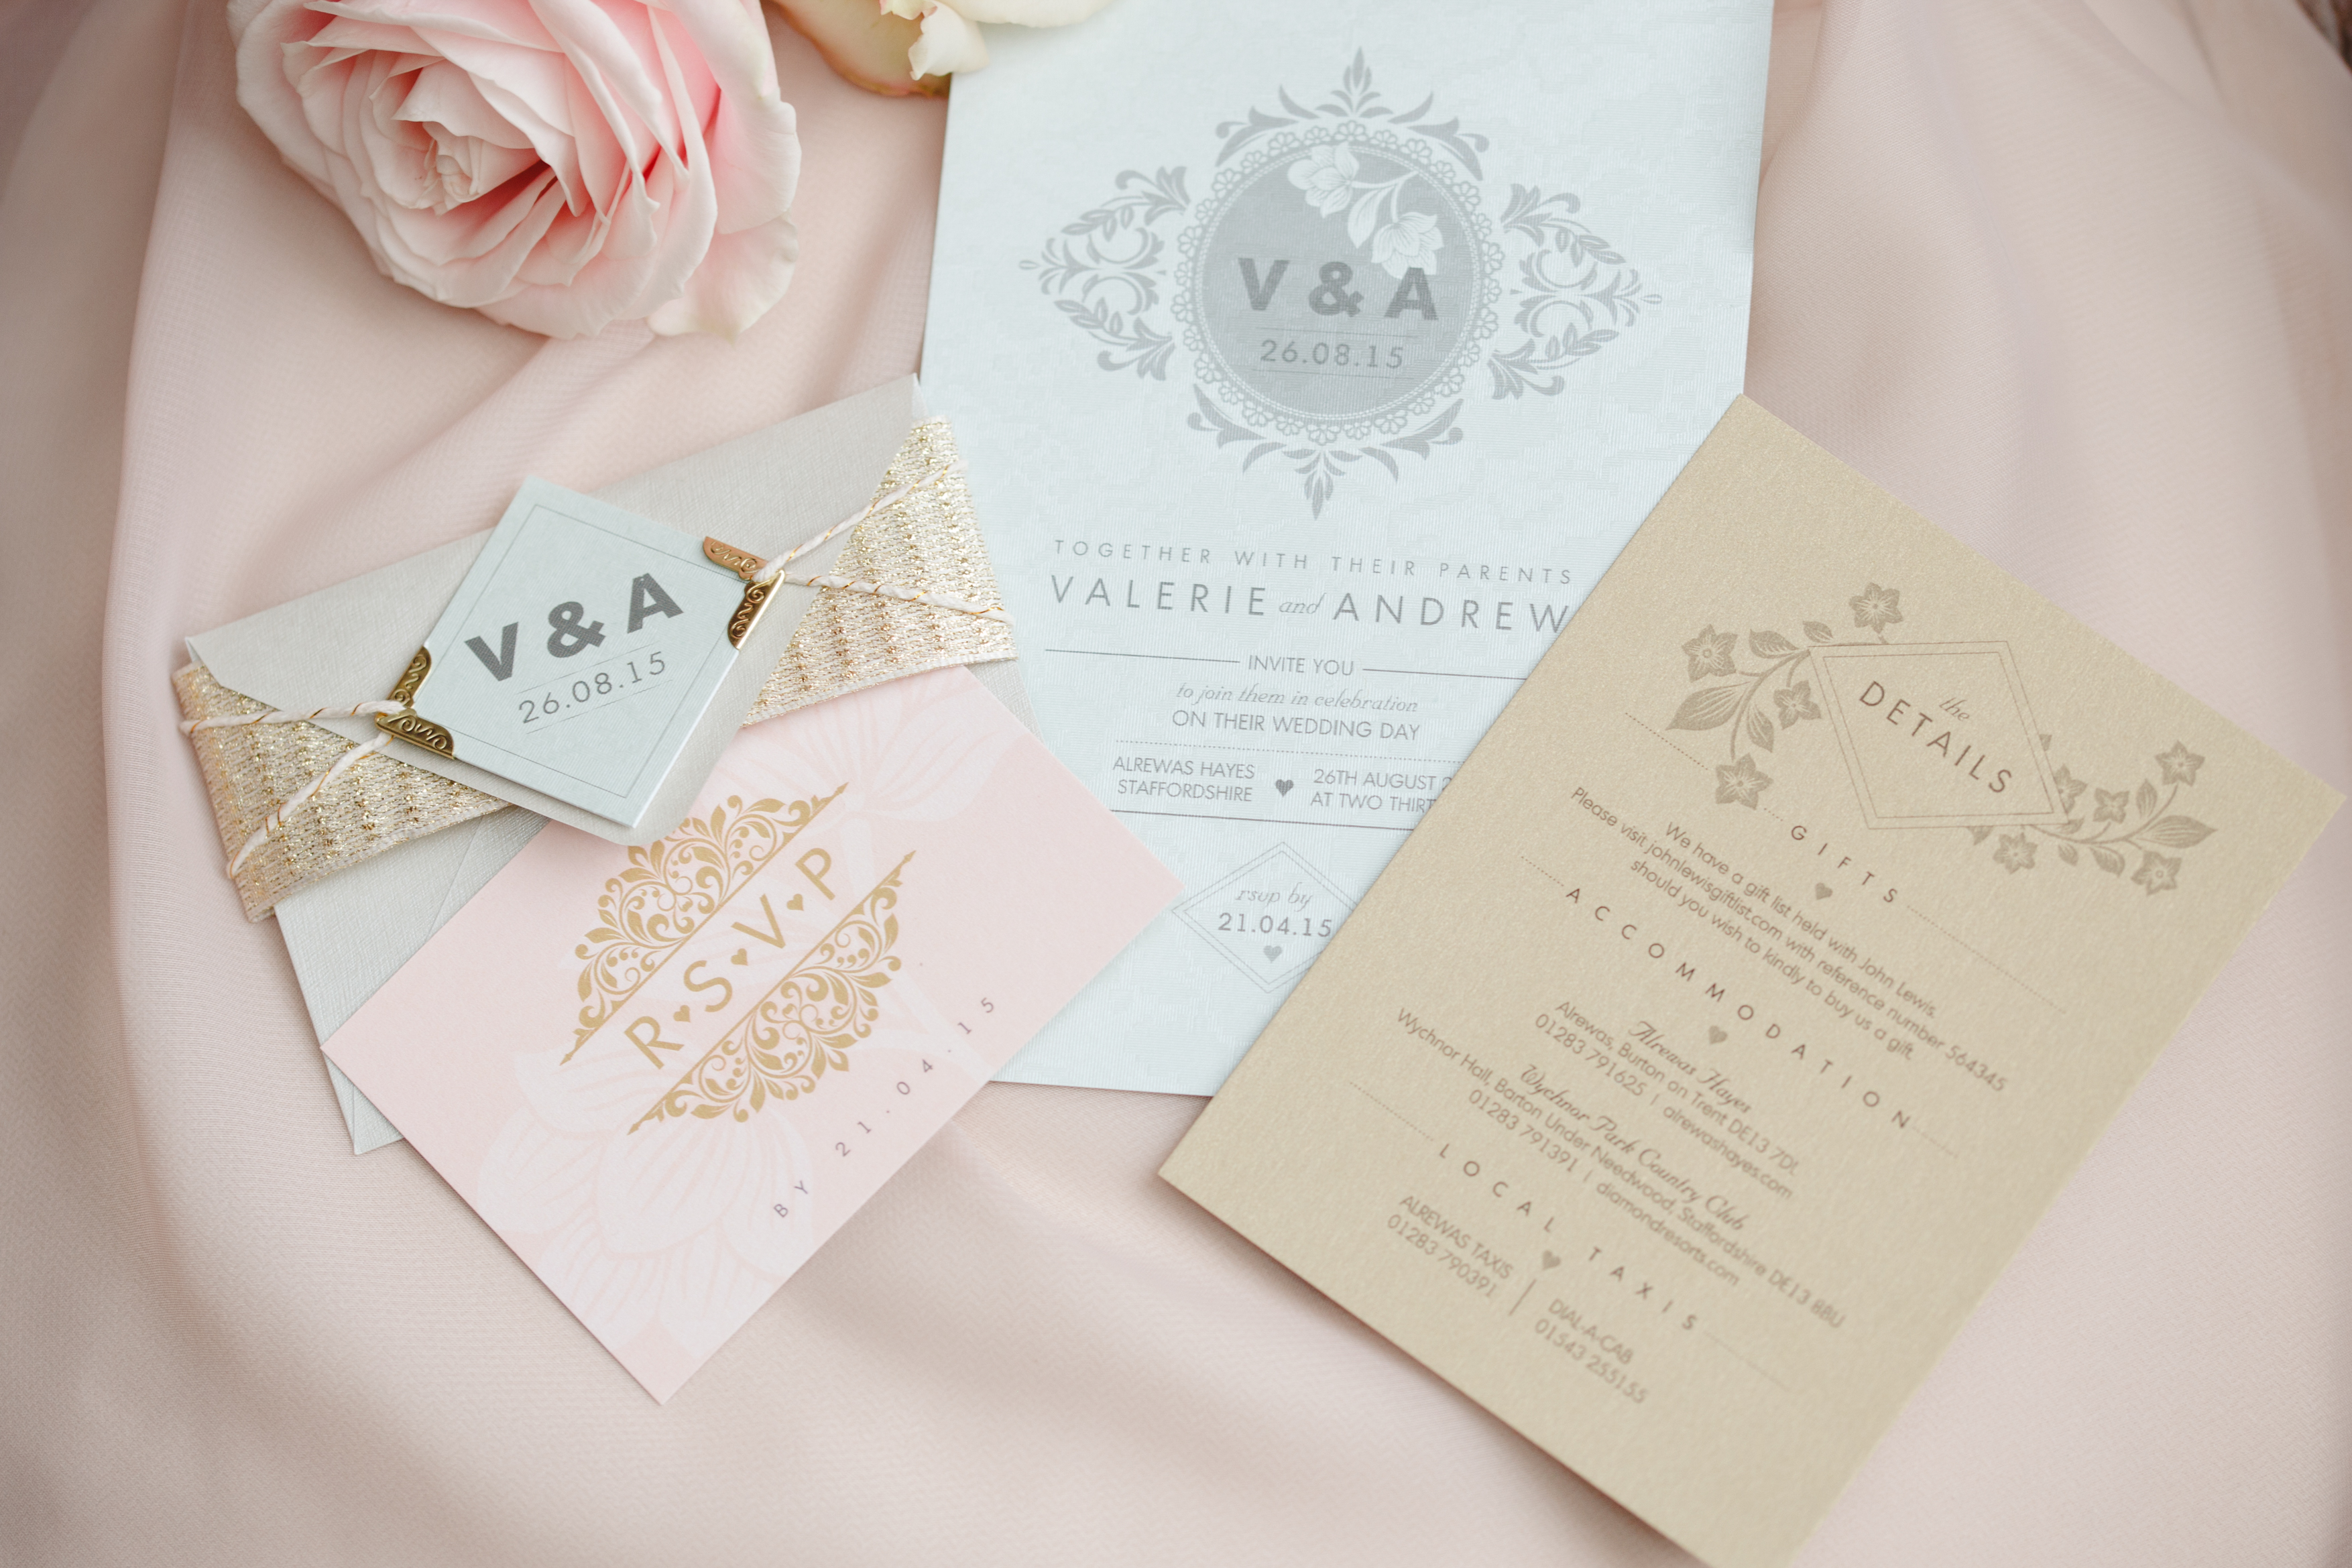 05-paperknots-stationery-london-stationer-claire-graham-photography_ukawp-118